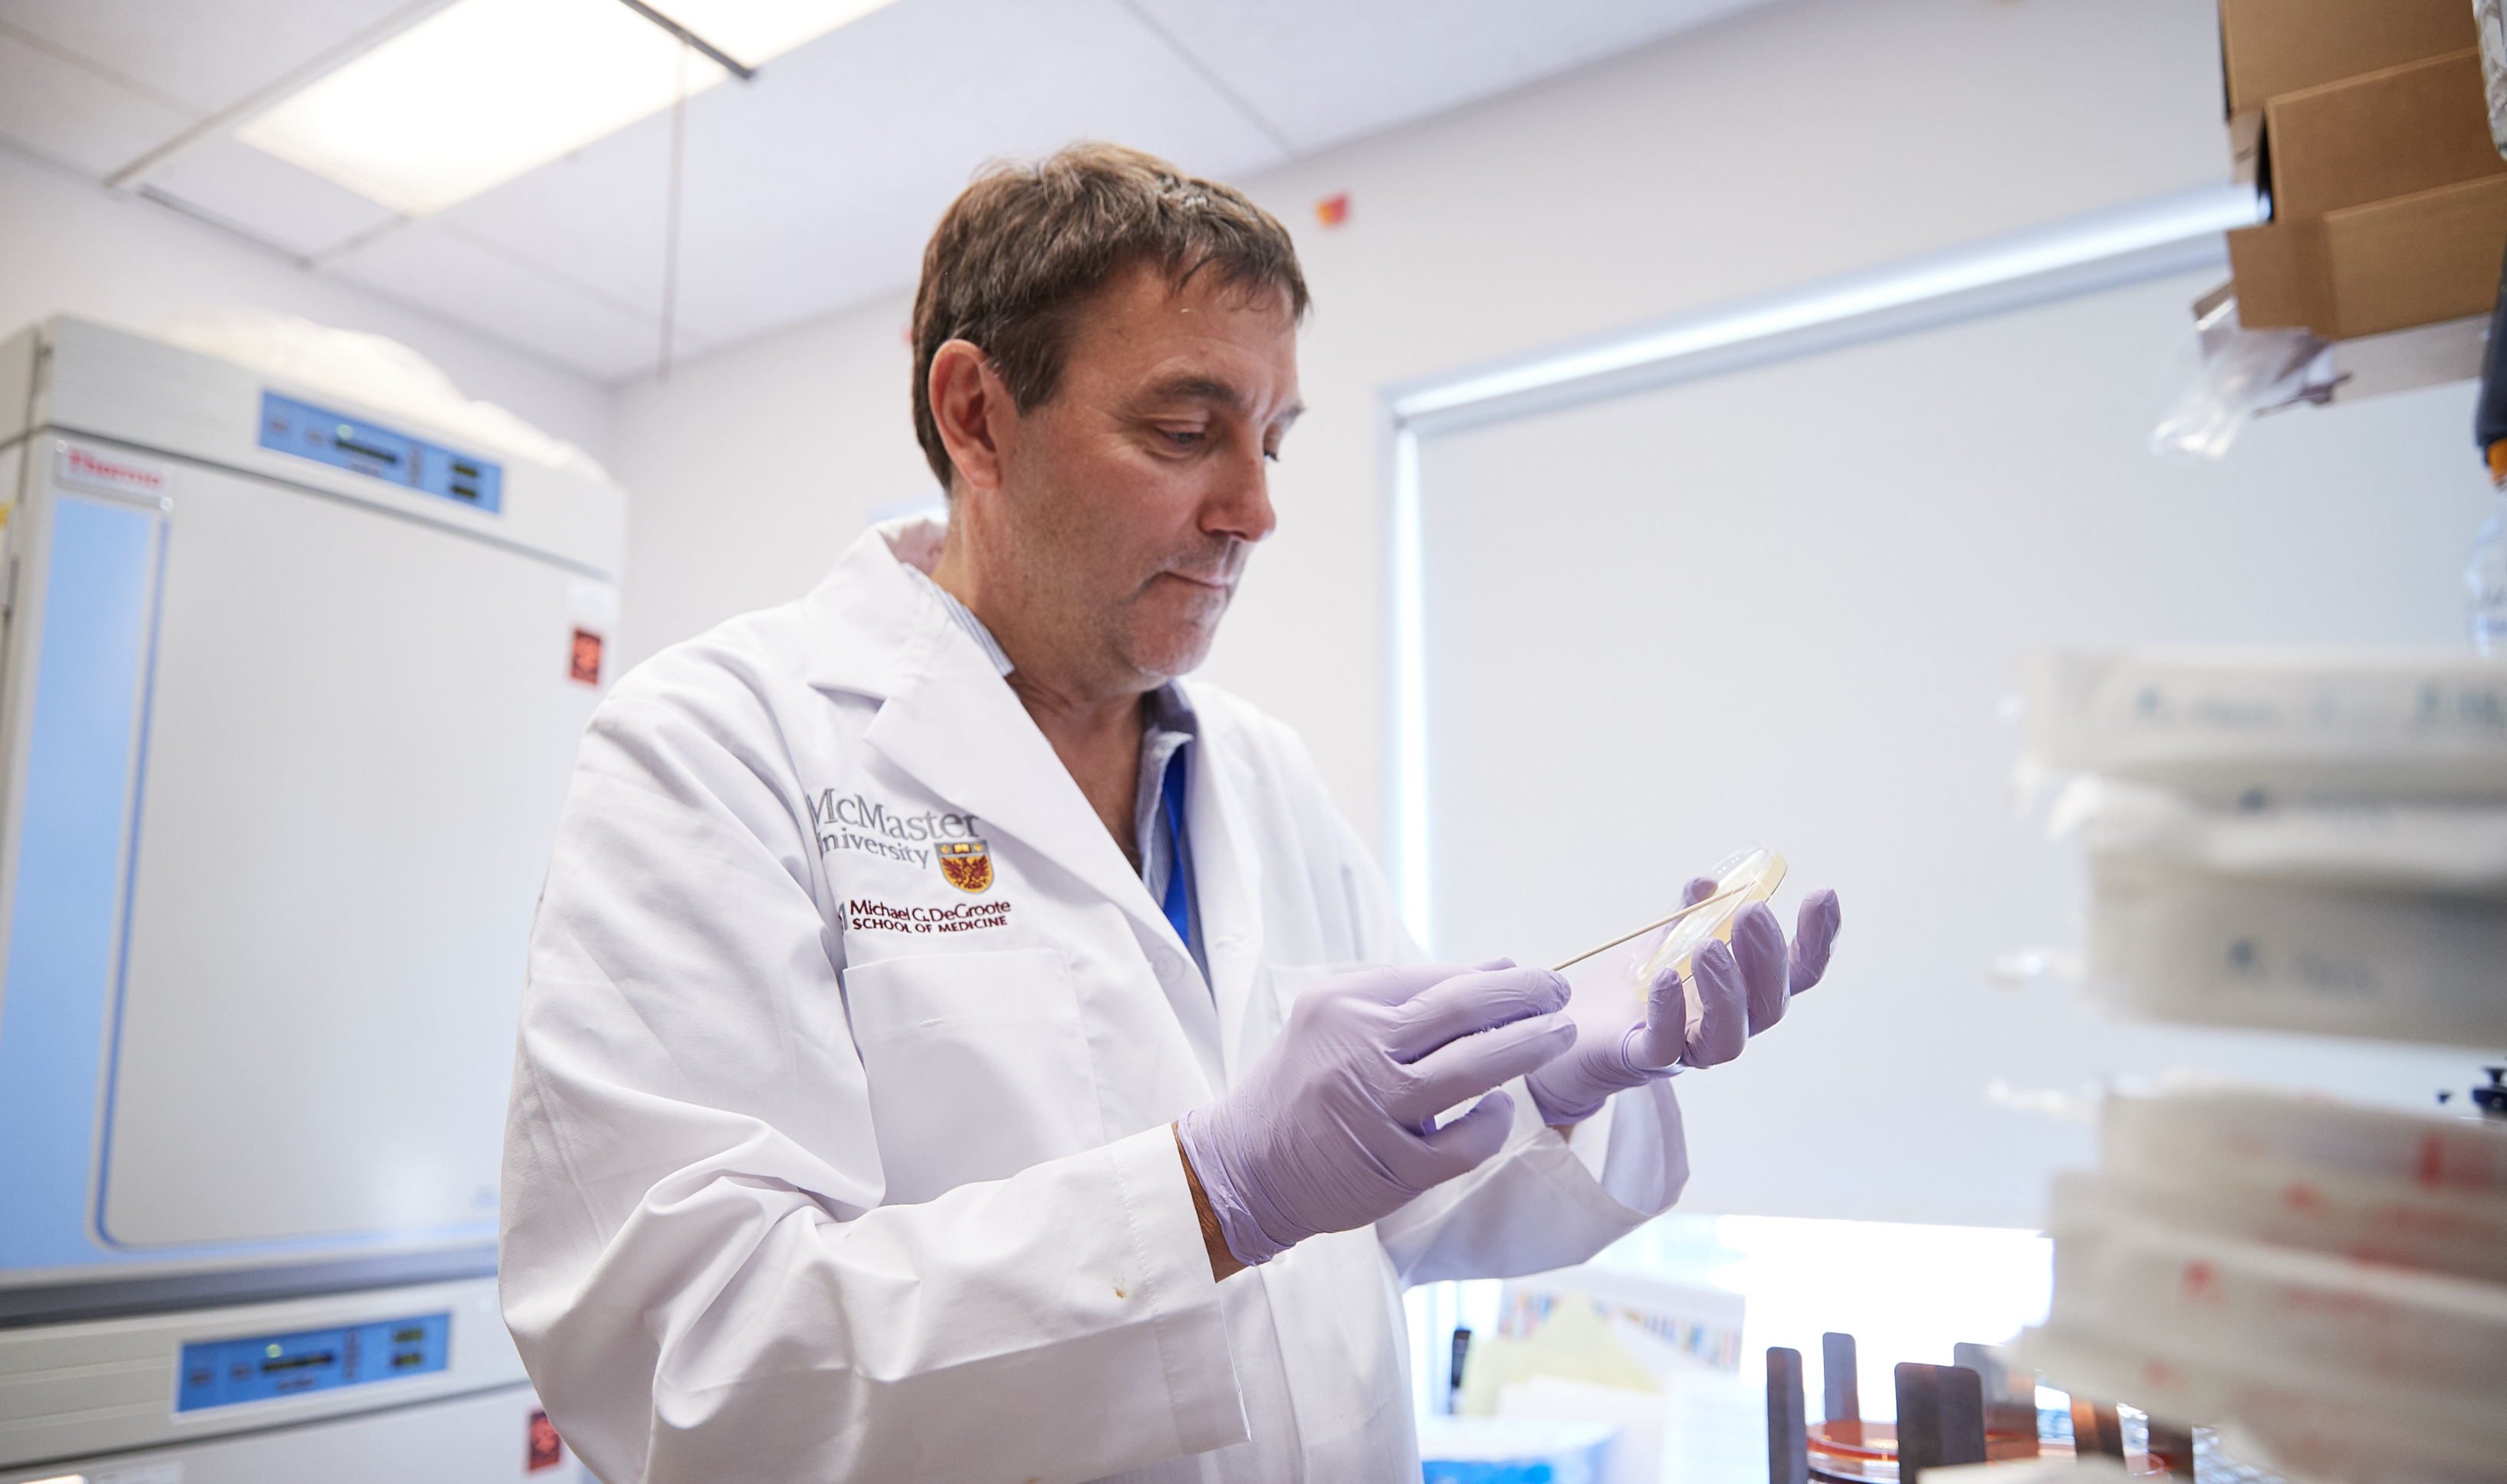 Michael Surette is the Canada Research Chair in Interdisciplinary Microbiome Research. He leads the Surette Lab in the Farncombe Family Digestive Health Research Institute. Photo by Kevin Patrick Robbins